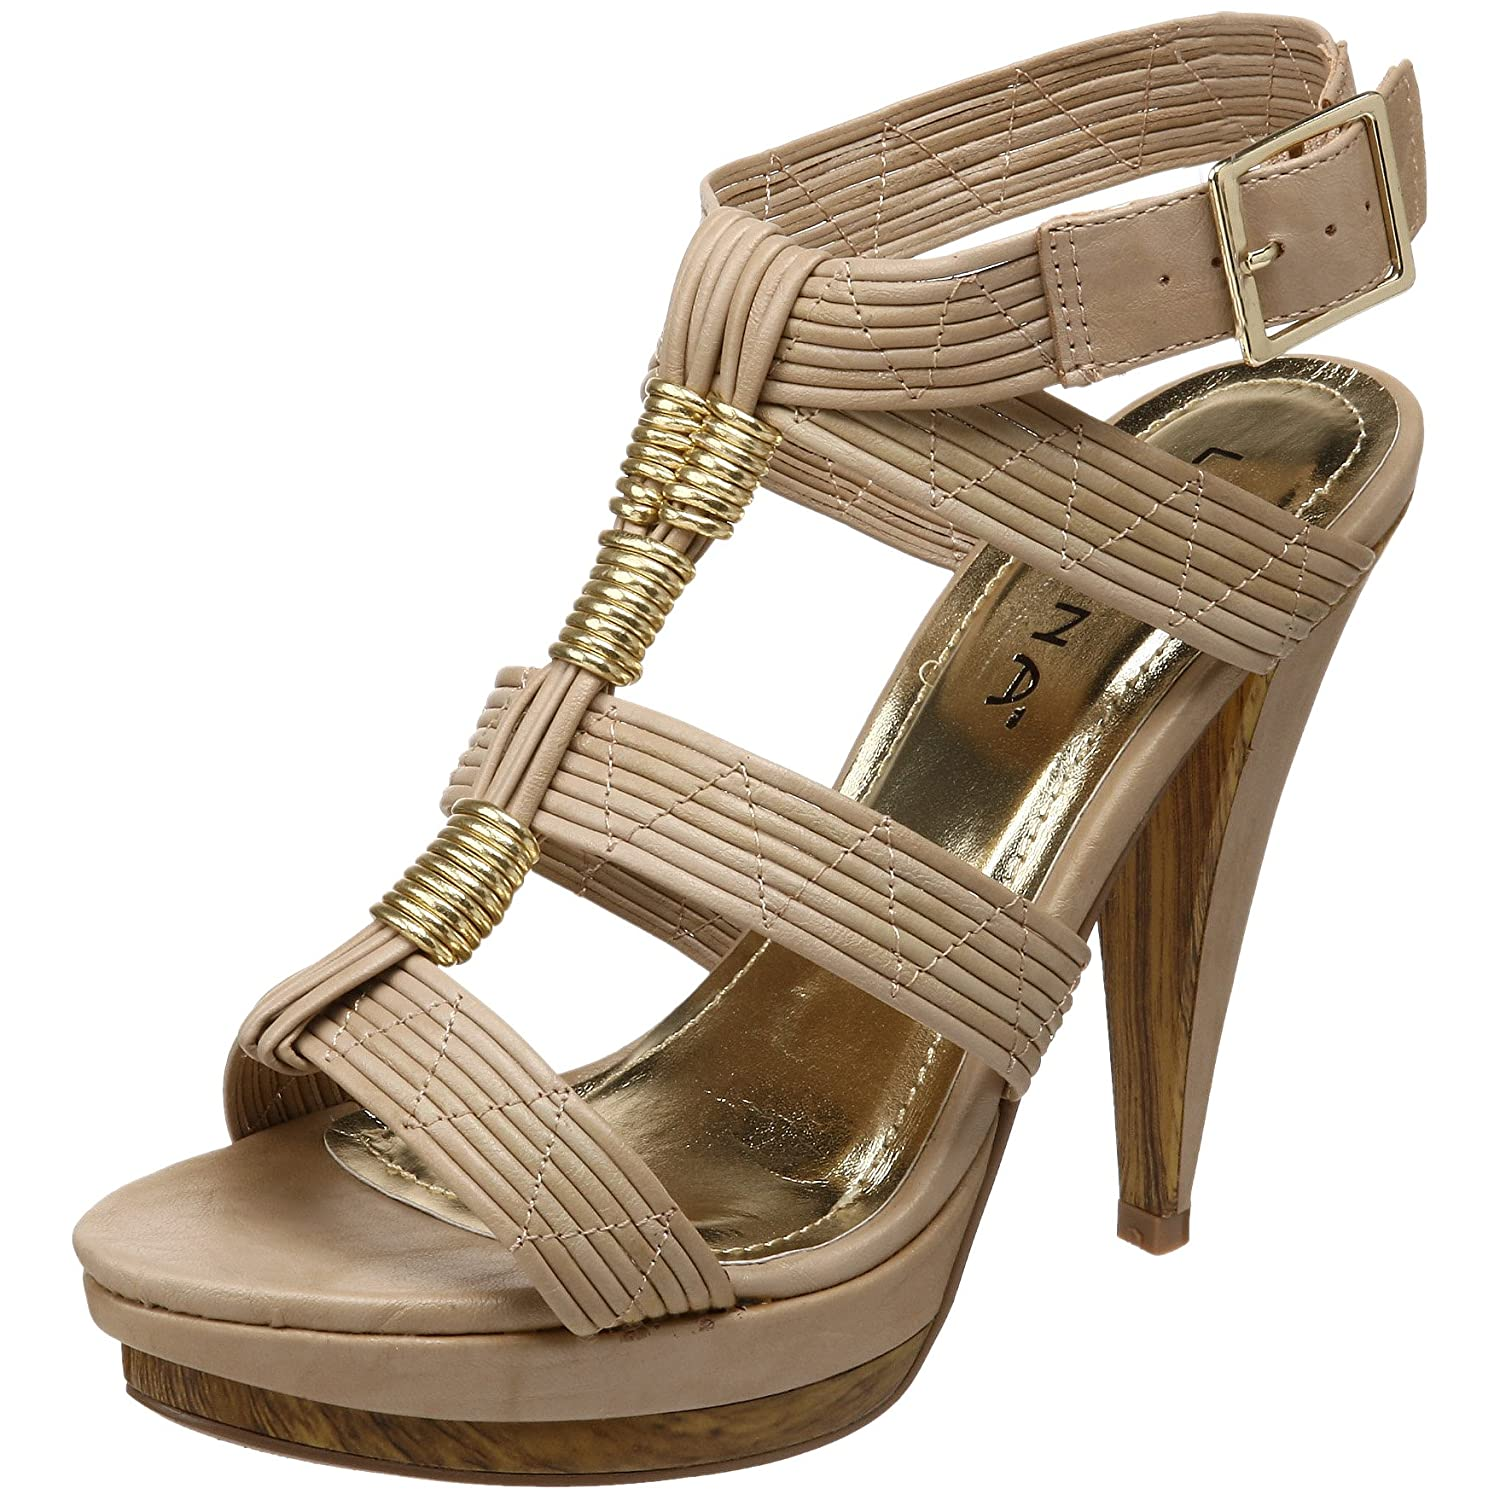 Liliana - Pagona-1 Platform Sandal from endless.com